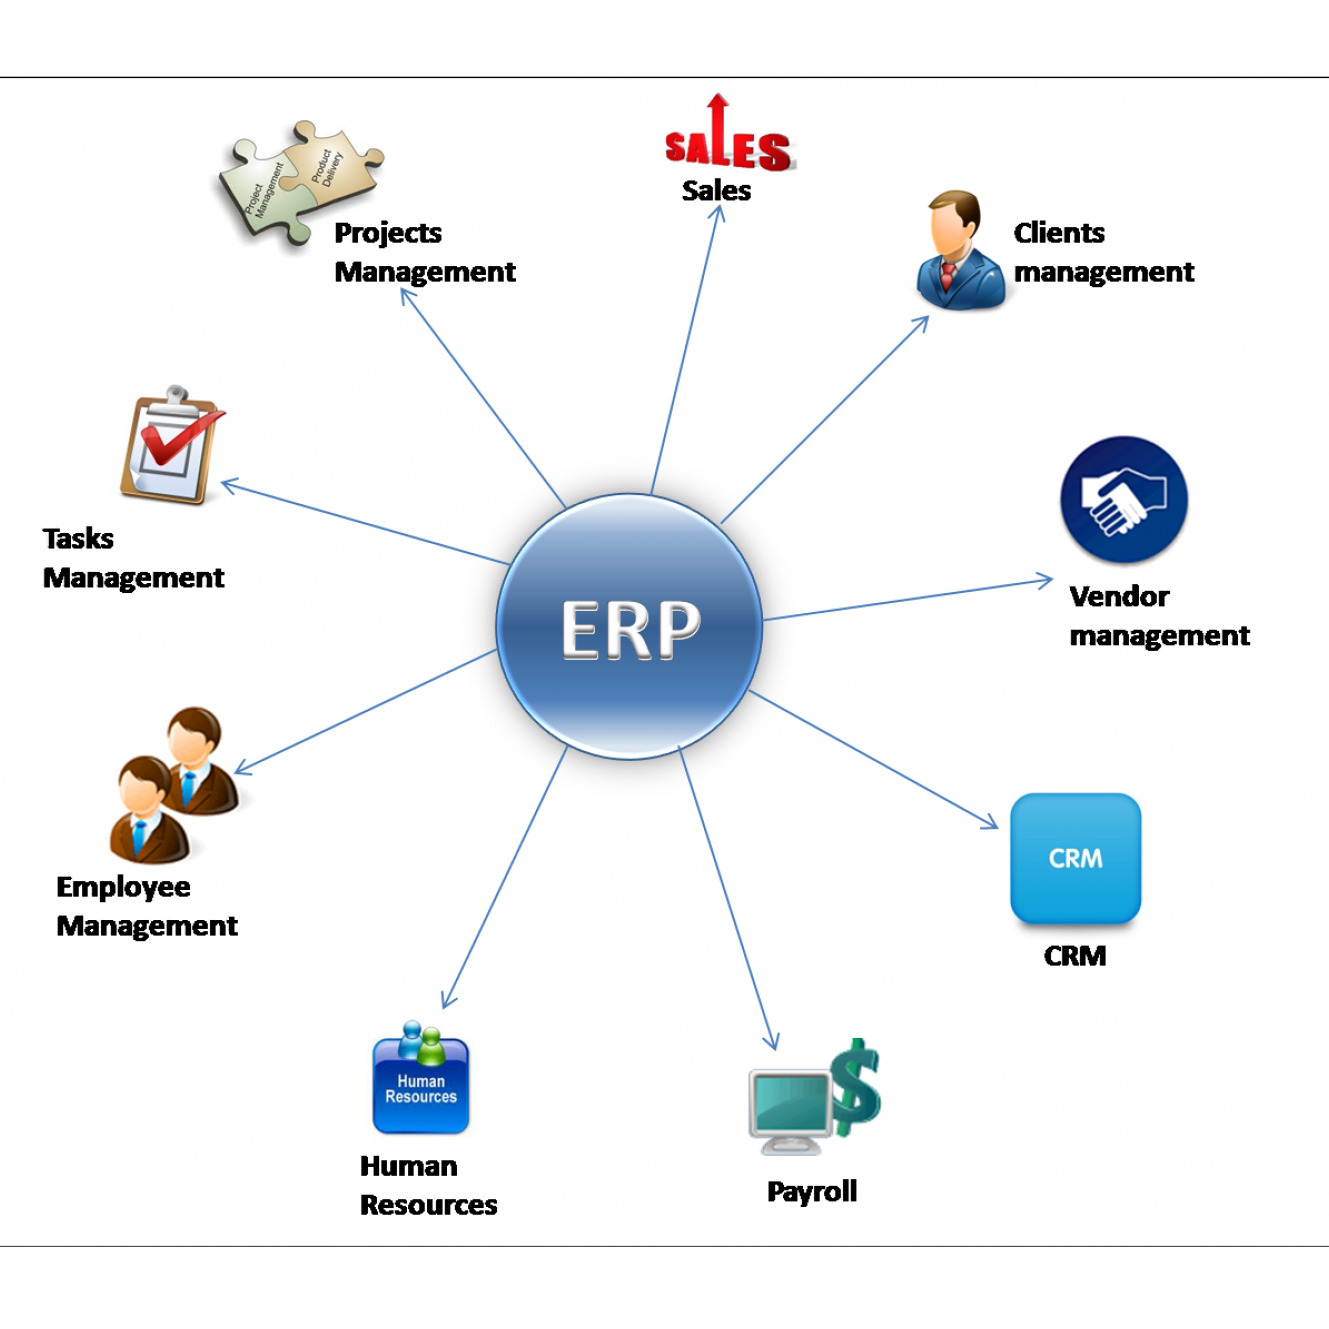 SAP ERP [ Enterprise Resource Planning ]